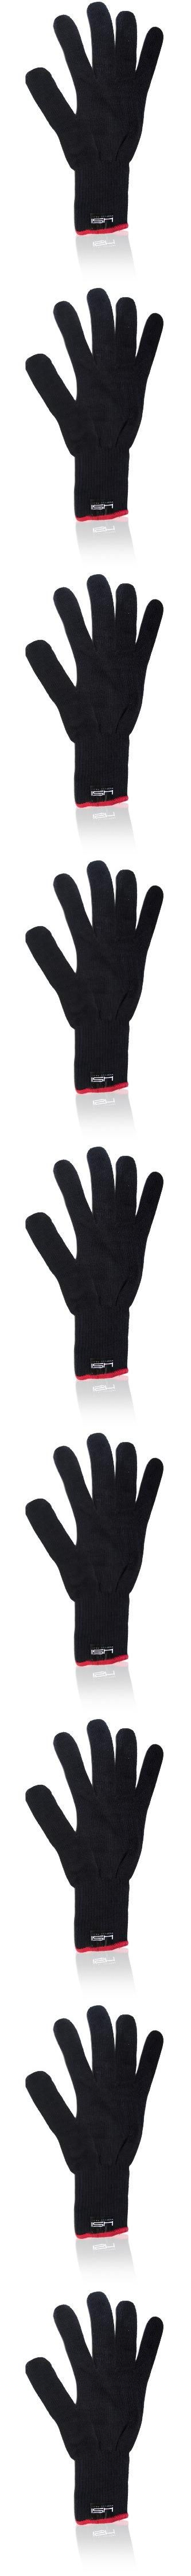 HSI Professional Heat Resistant Glove for Curling and flat iron. Black and red Heat resistant Gloves. One size fits all. Used for flat iron, curling iron, and hair dryers..  #HSI_Professional #Beauty